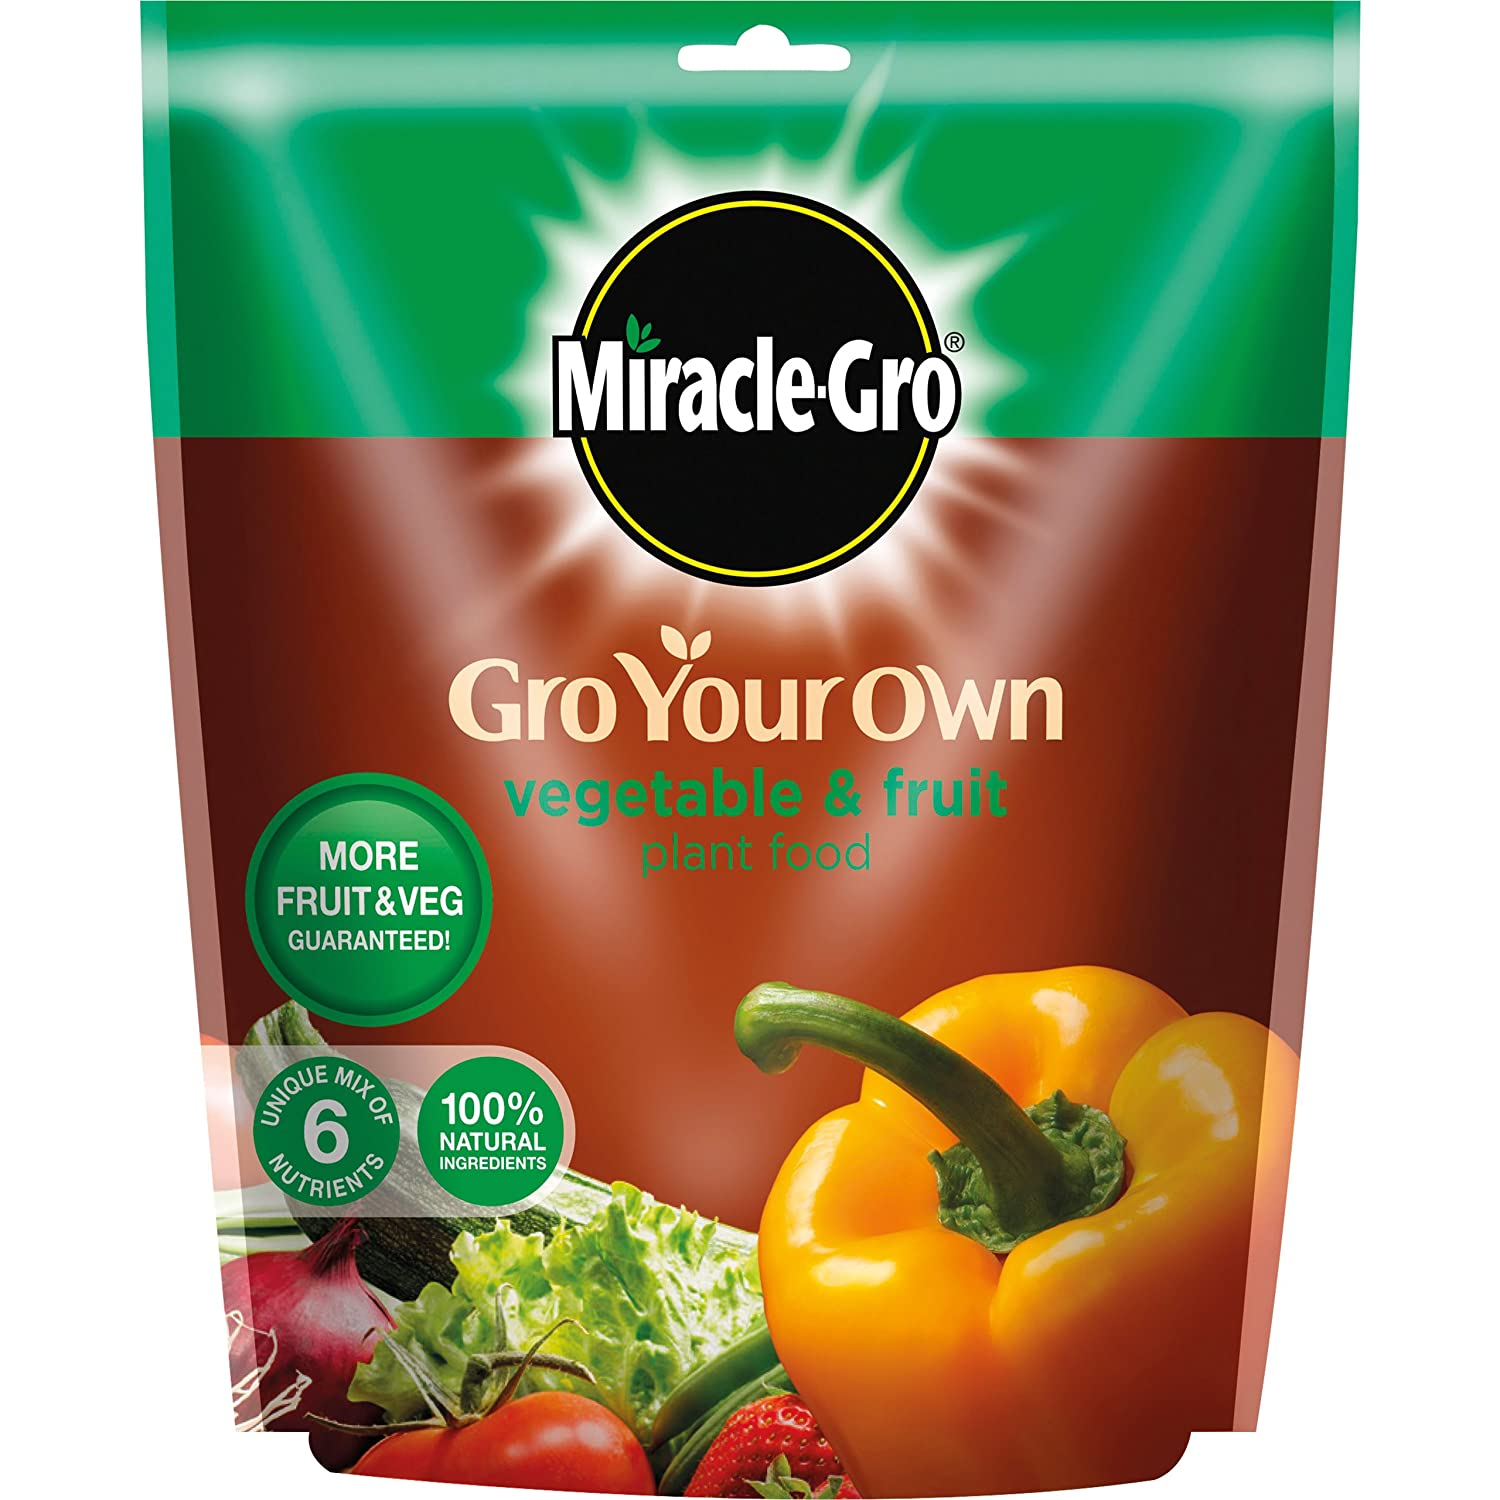 Miracle-Gro Grow Your Own Fruit and Vegetable Plant Food 1.5kg Evergreen Garden Care Ltd 15220